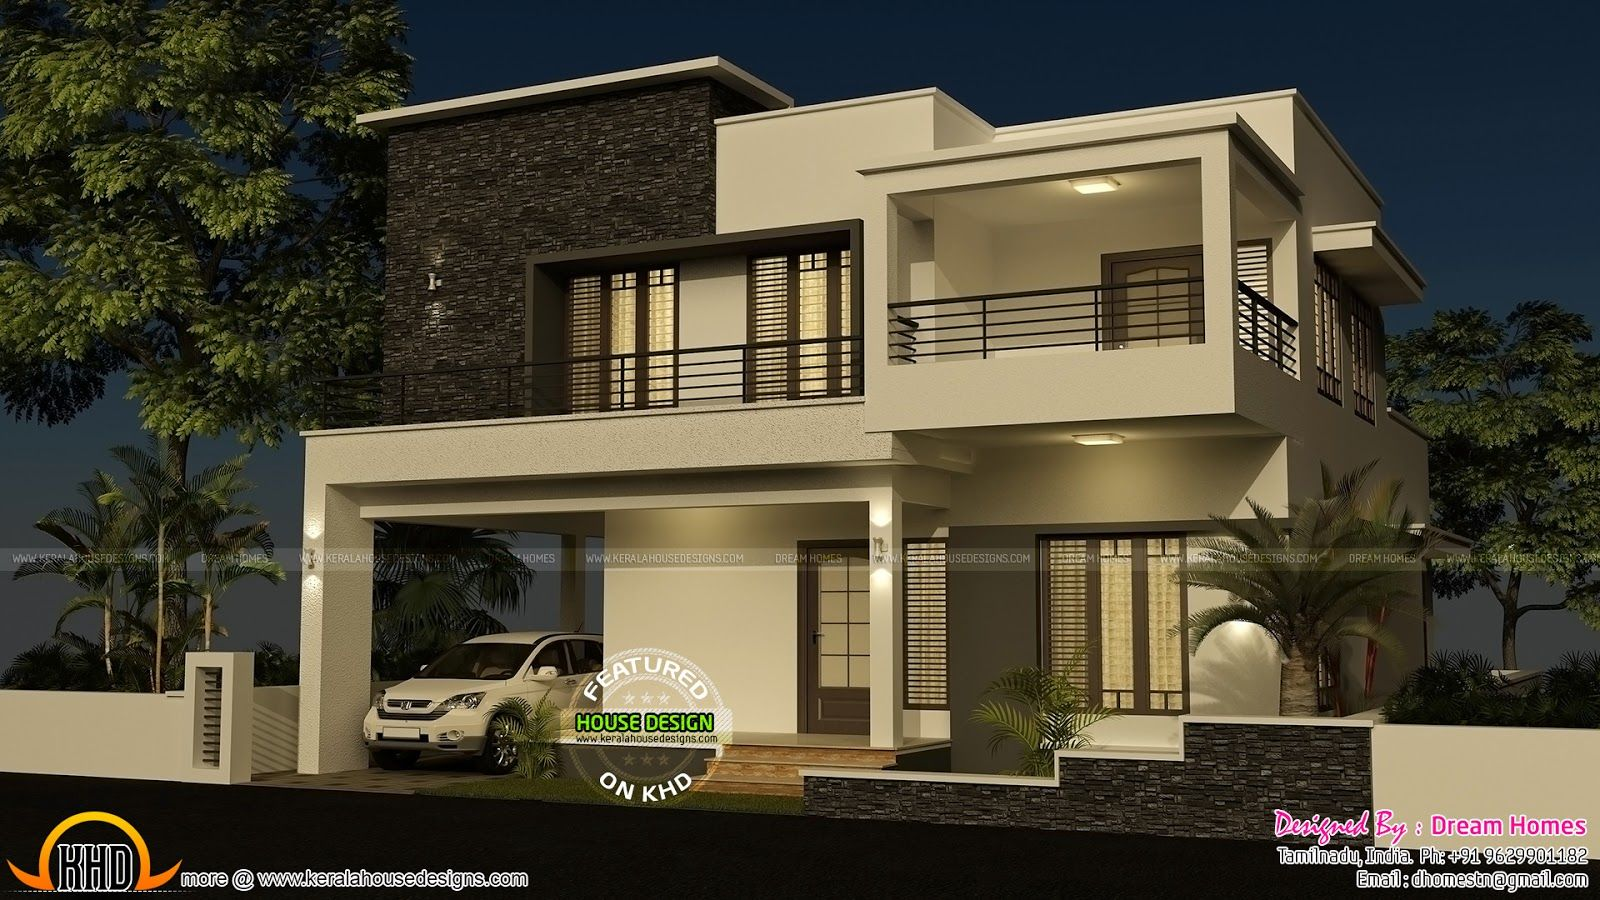 4 Bedroom Modern House With Plan Modern House Plans Kerala House Design House Designs Exterior